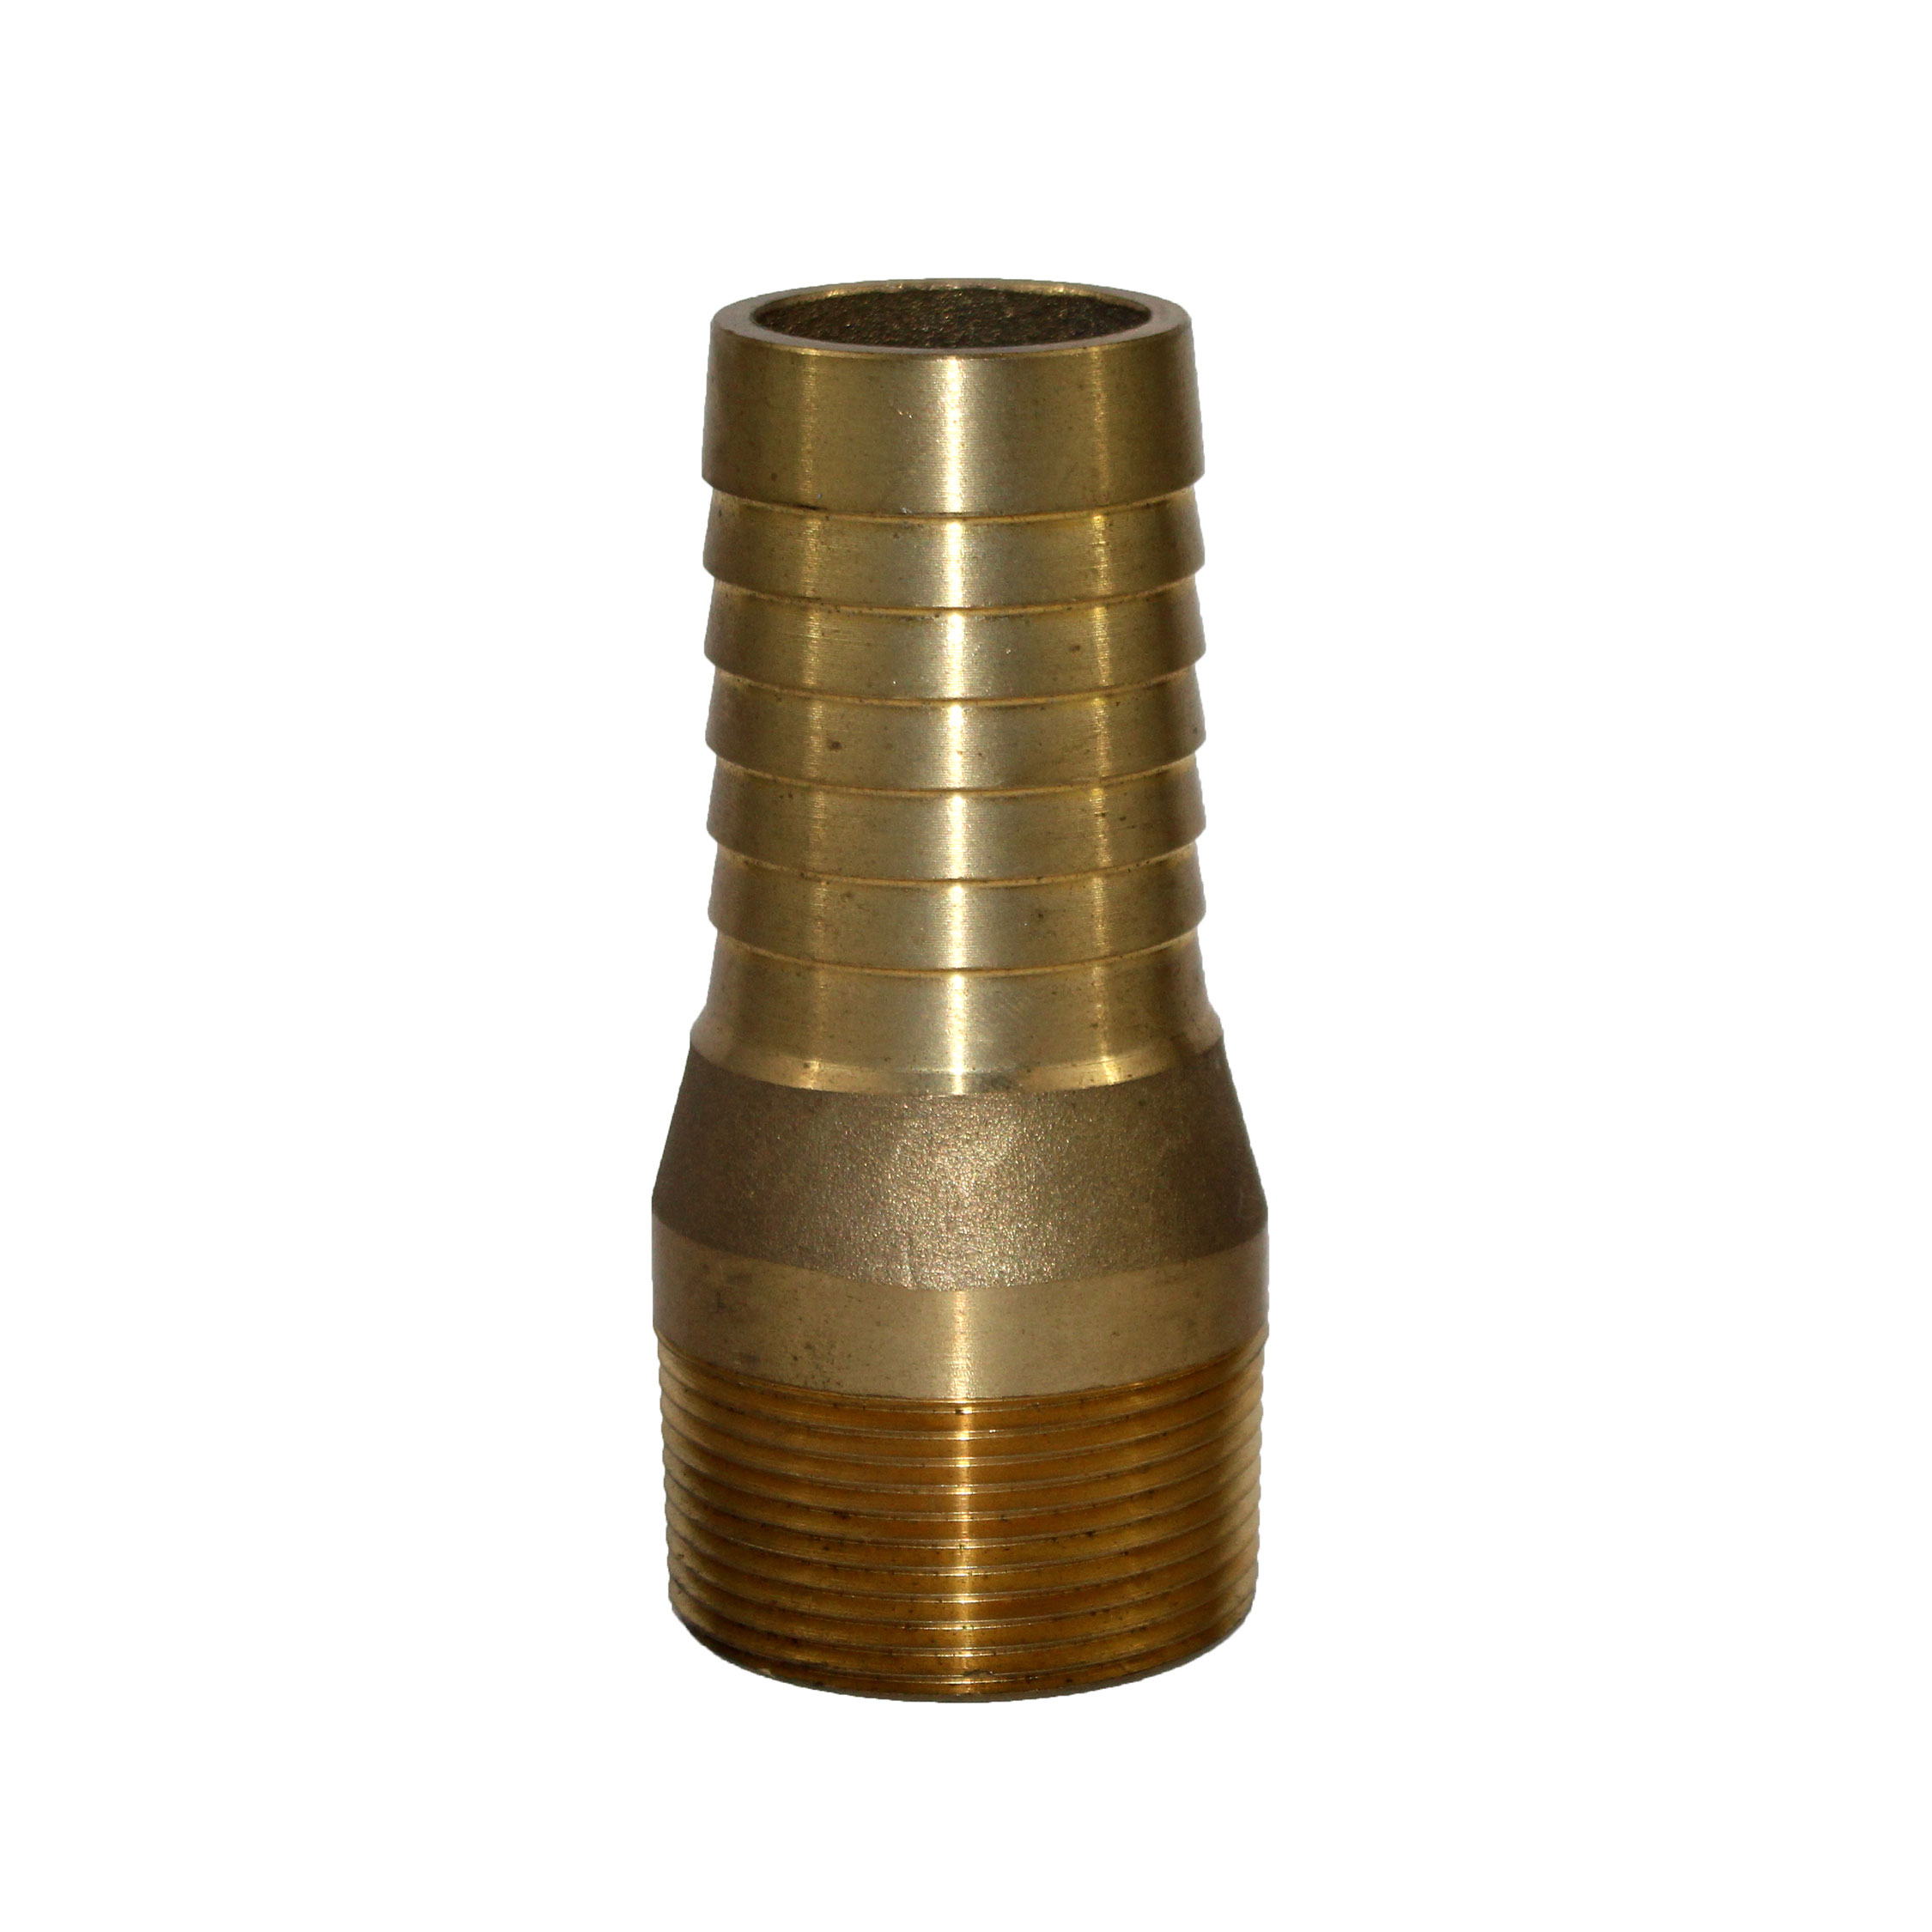 603700-Brass-King-Combo-Nipple.jpg